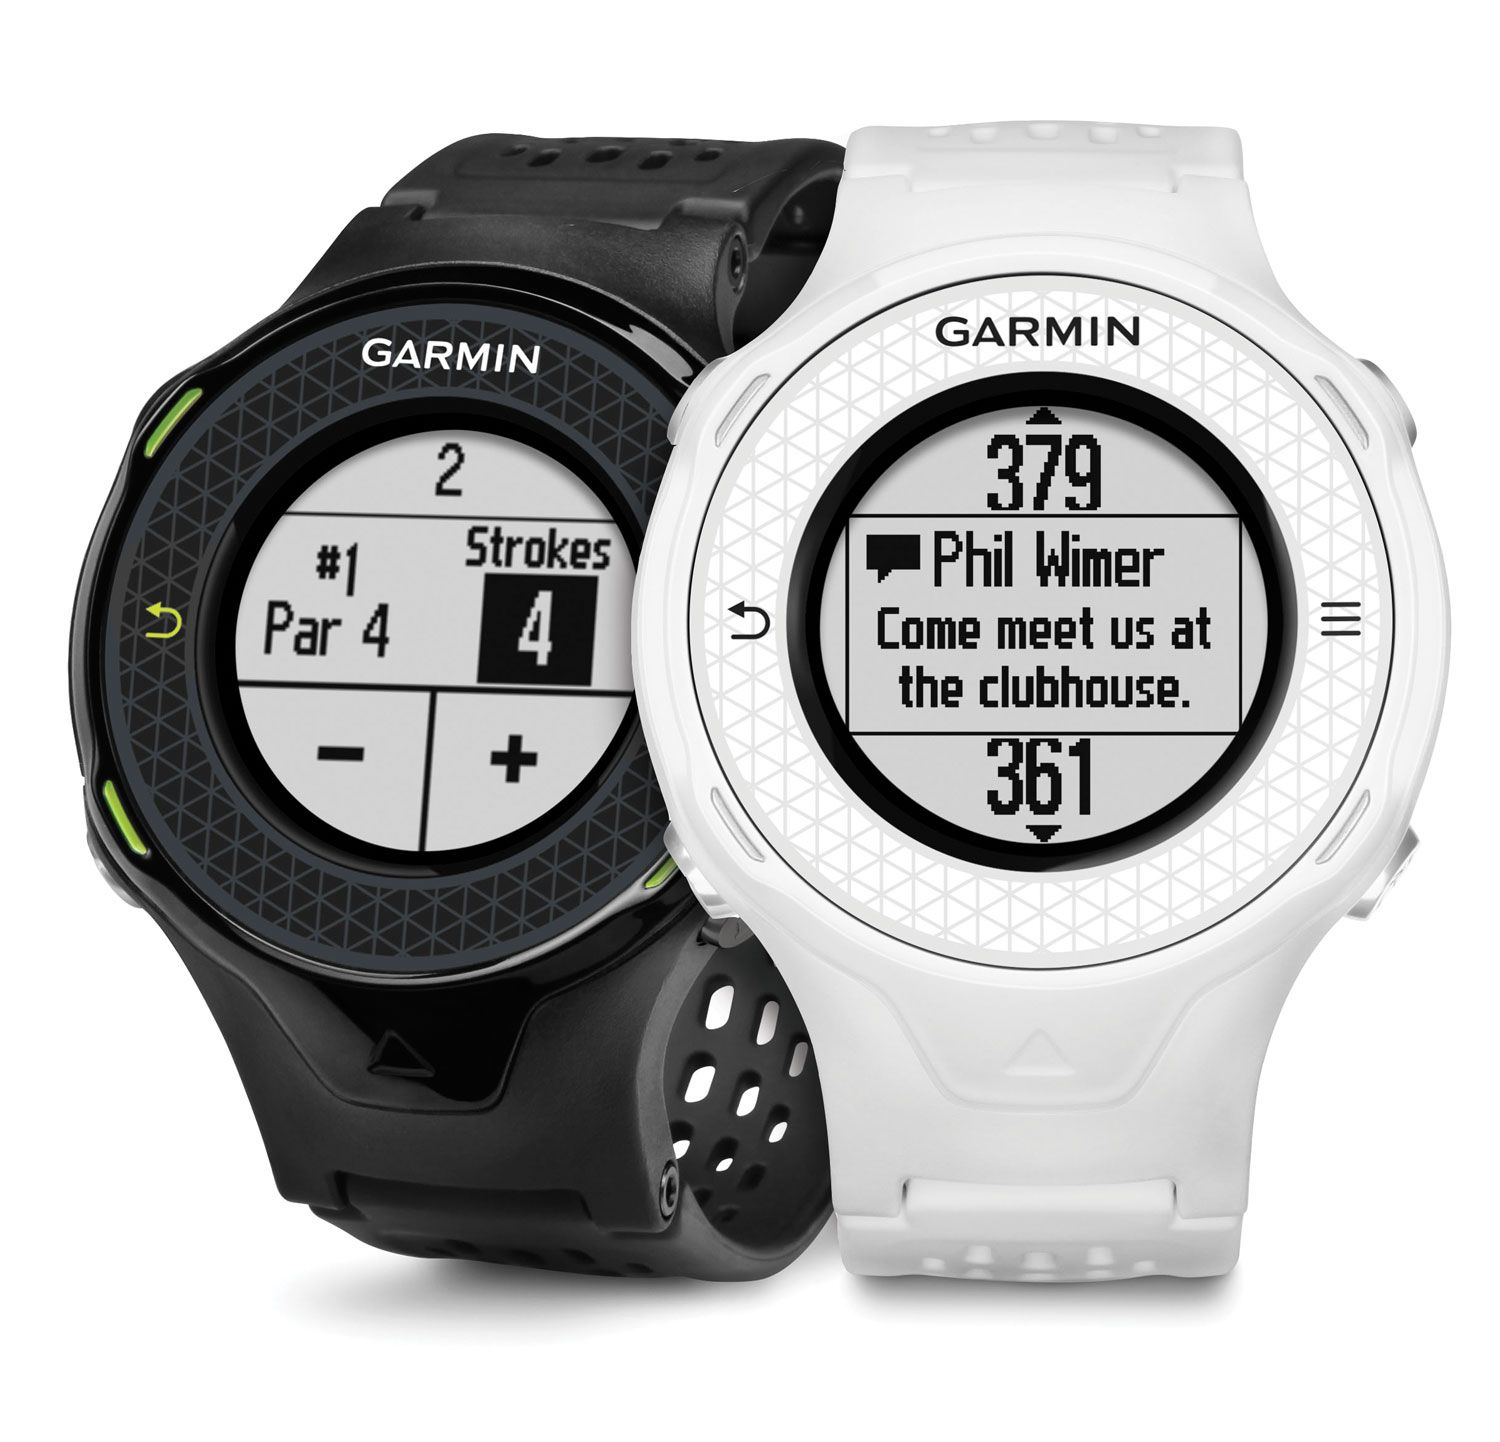 Garmin Approach S4 Golf GPS Watch Golf gps watch, Garmin